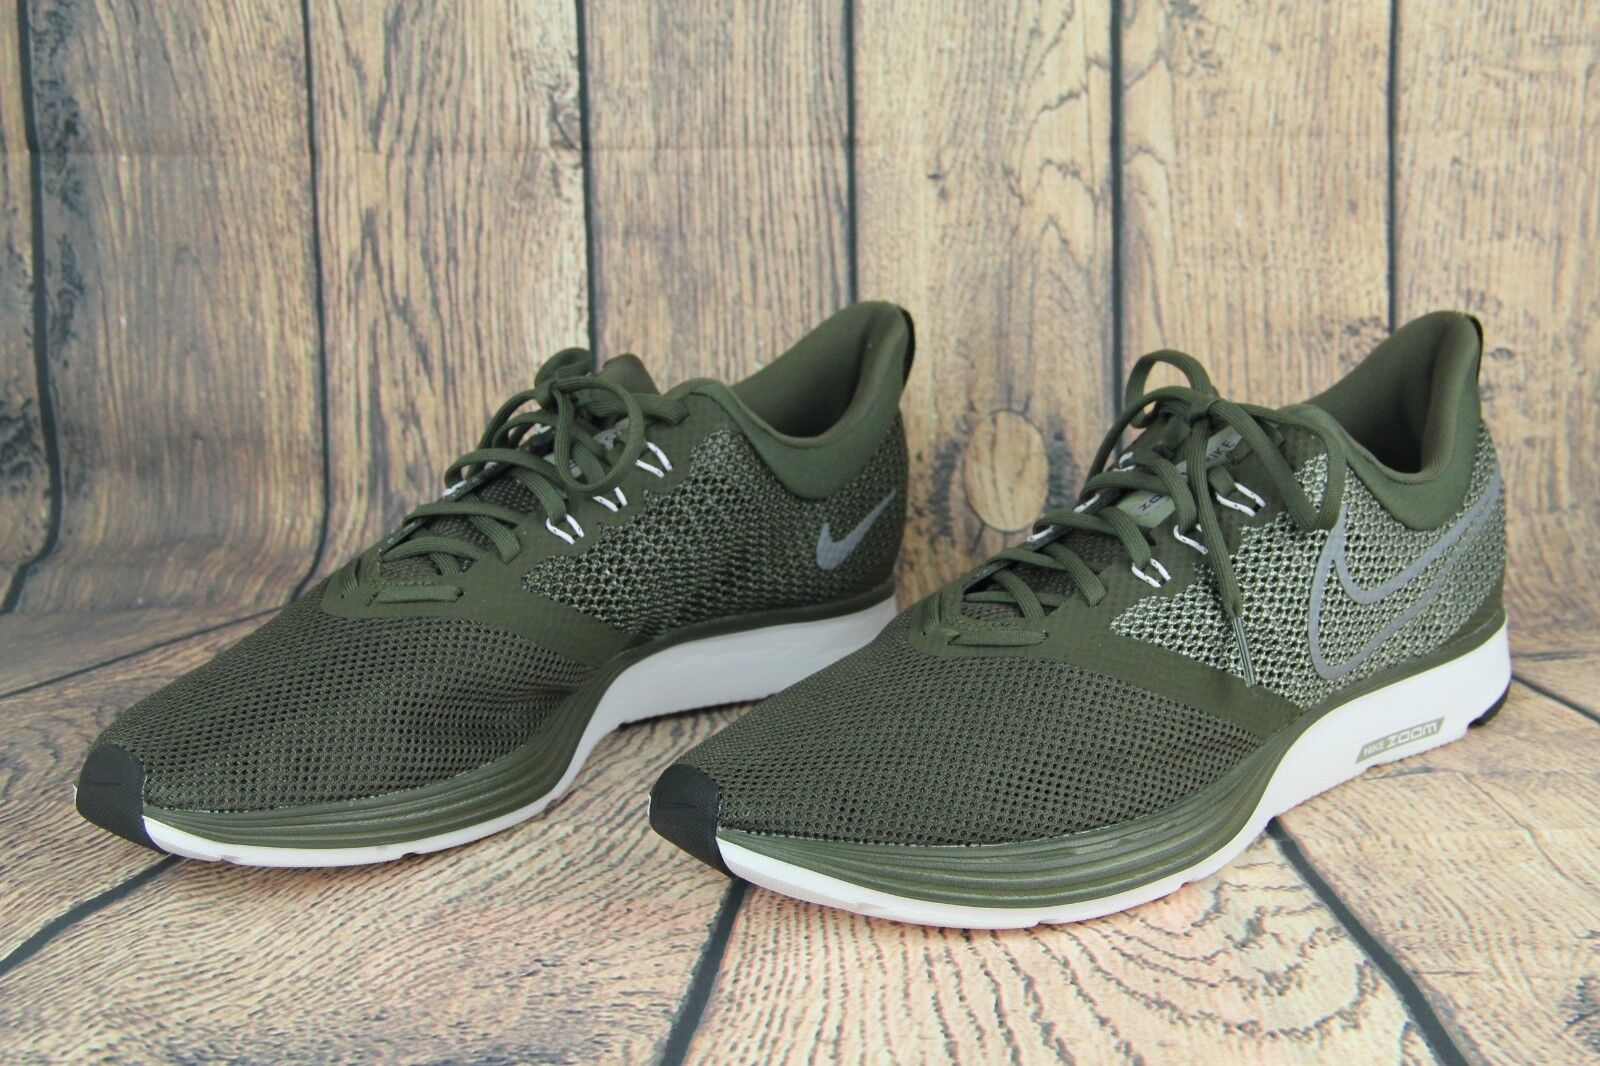 28a25cdbbe527 ... Nike Zoom Strike Men Running shoes Cargo Khaki Khaki Khaki Green Grey  White AJ0189-300 ...